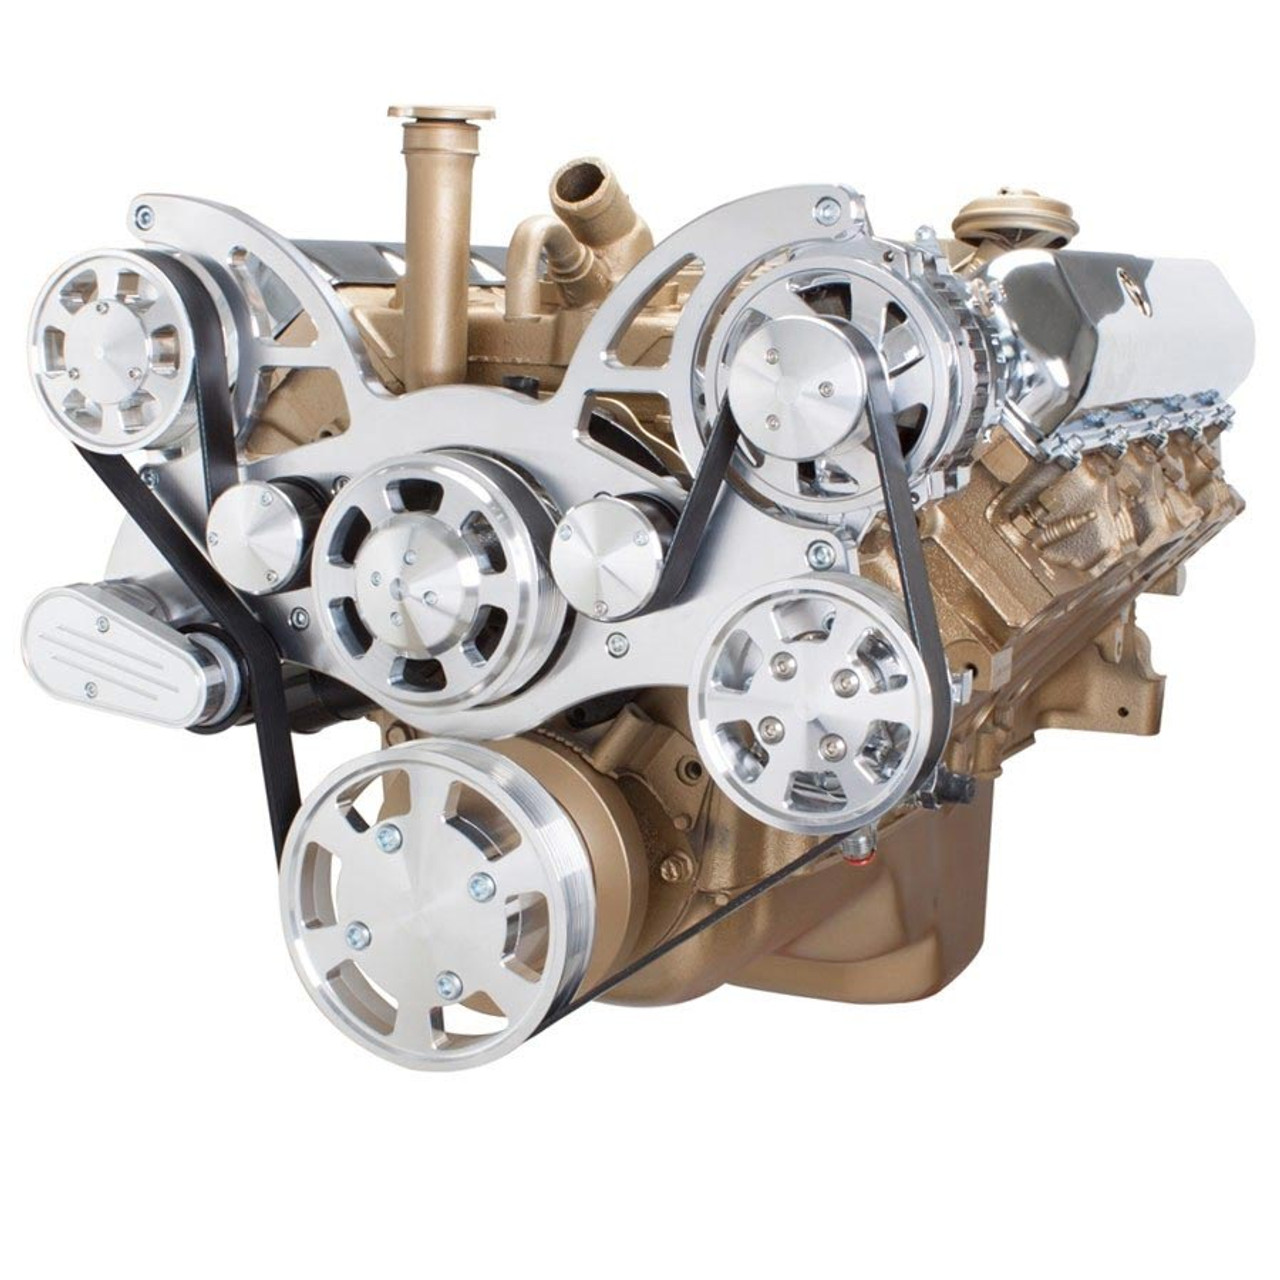 Serpentine System for Oldsmobile 350-455 - Power Steering & Alternator ...